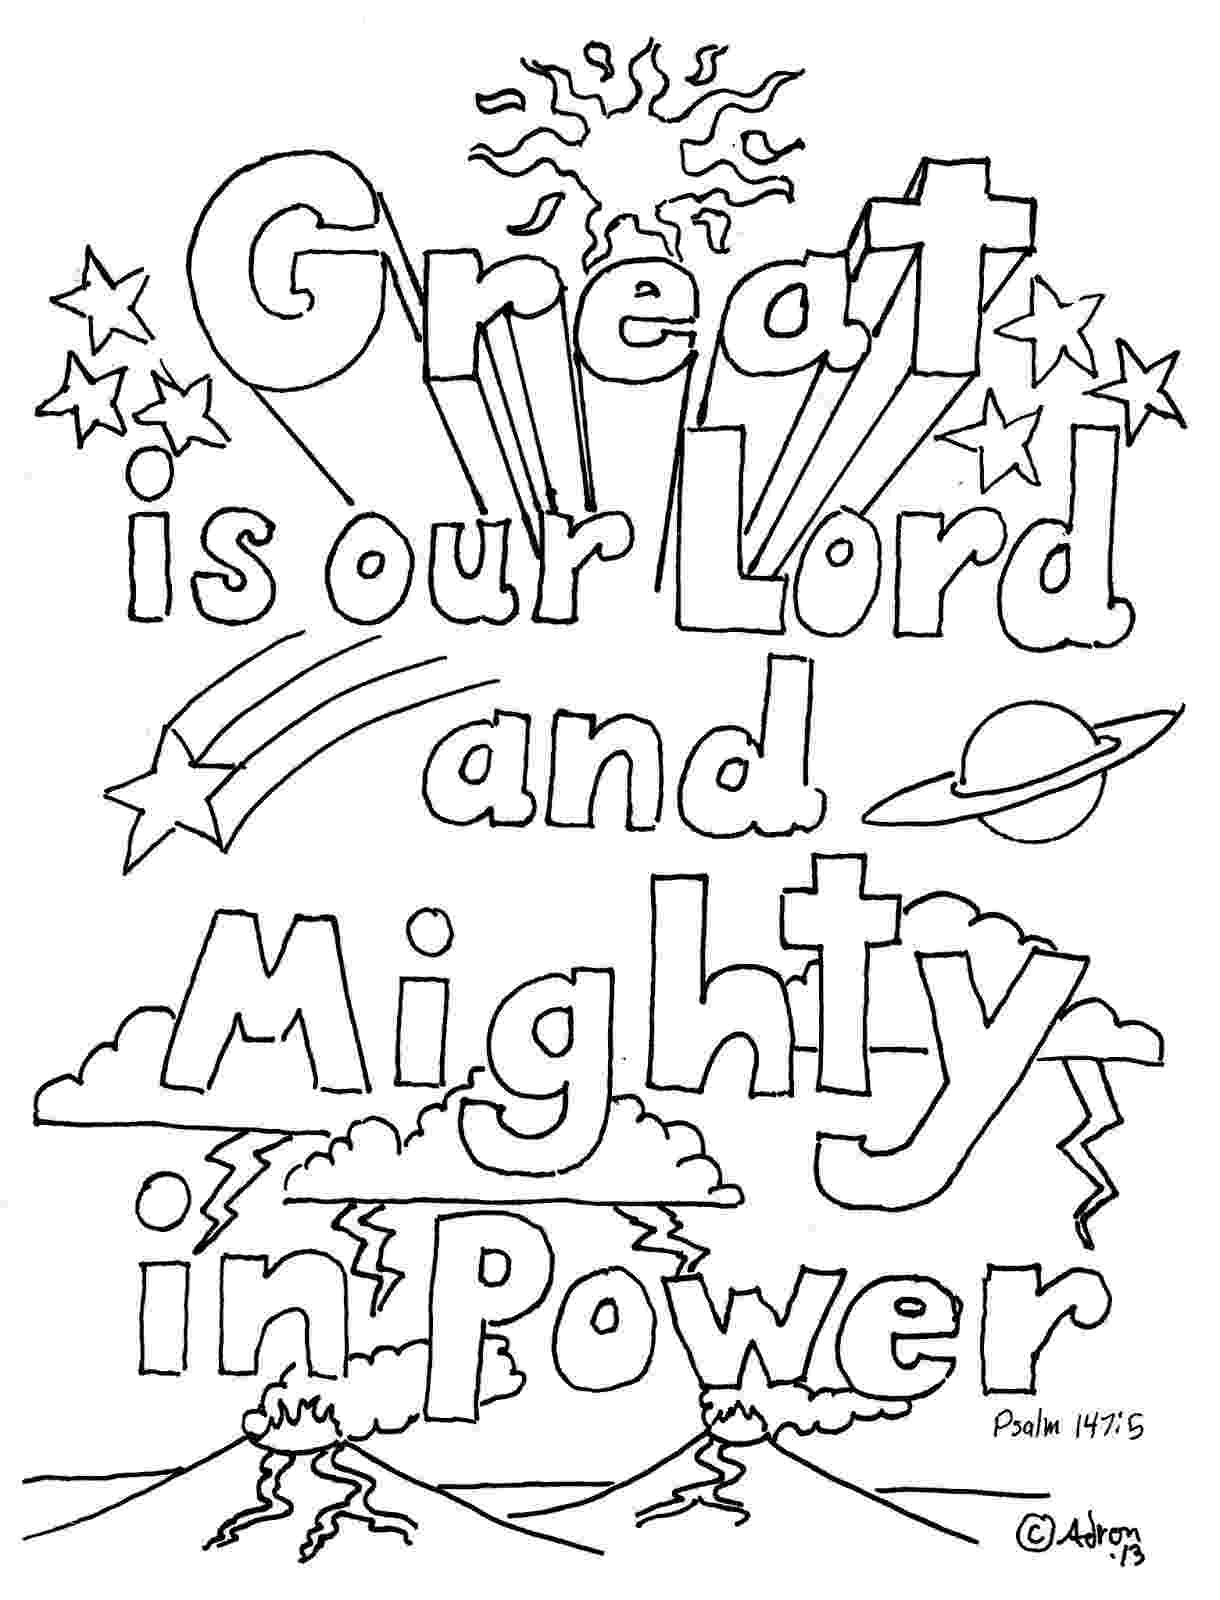 psalms coloring pages coloring pages for kids by mr adron printable coloring pages coloring psalms